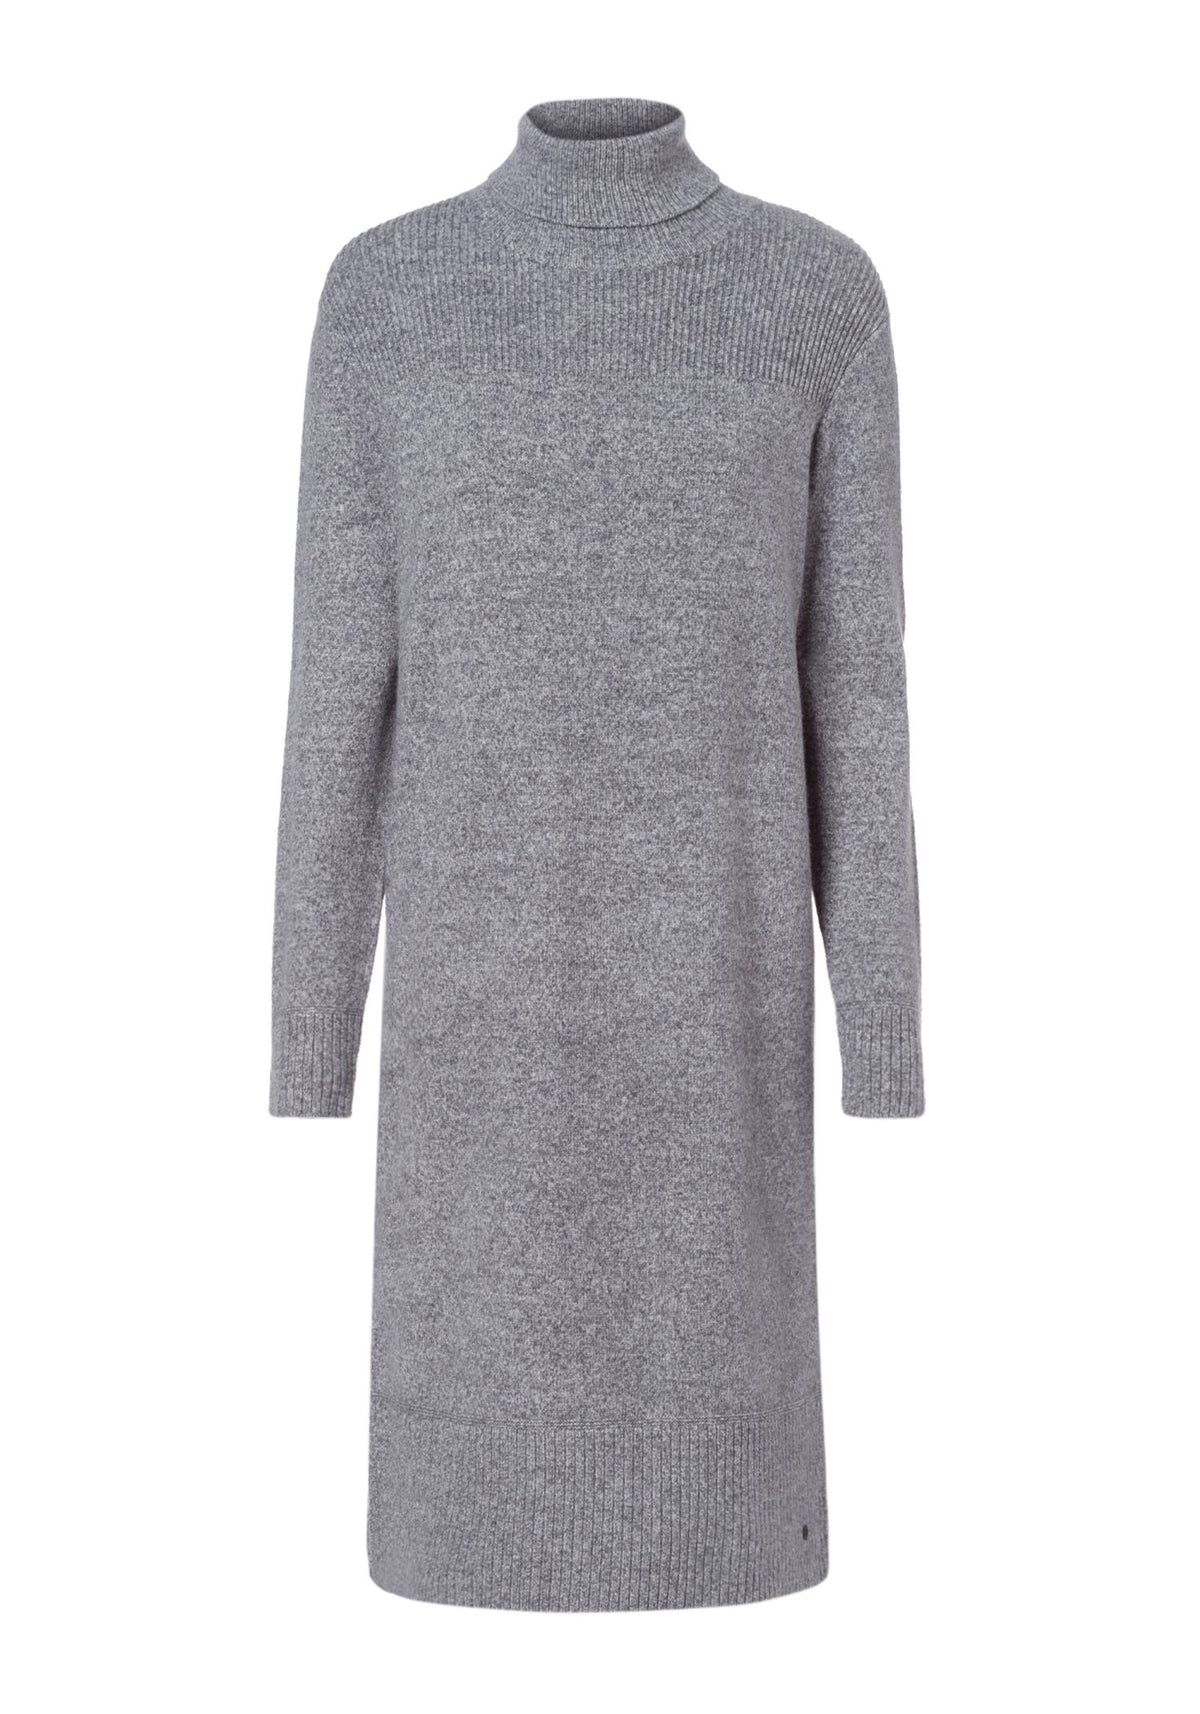 Long Sleeve Turtle Neck Sweater Dress